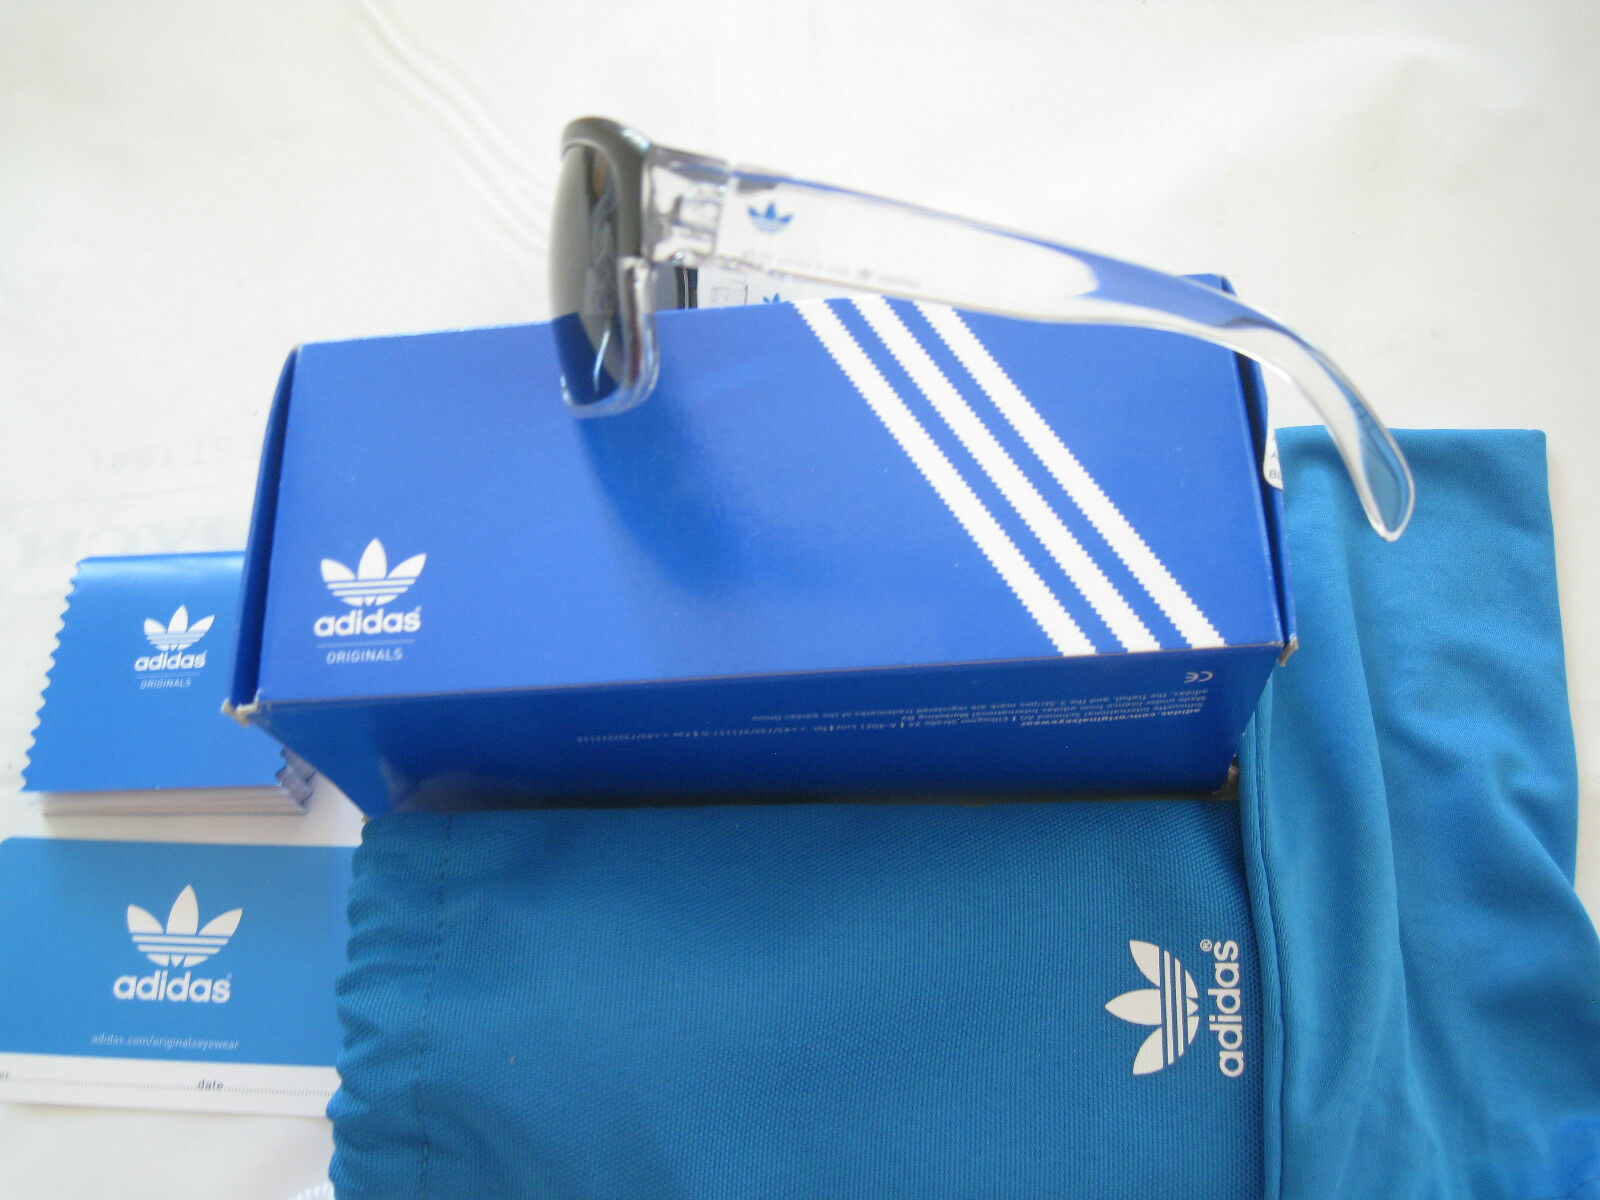 ADIDAS SANTIAGO  RECTANGLE RECTANGLE  Sunglasses-AH26-00-NWT-AUTHENTIC-LIMITED EDITION 35dbf6